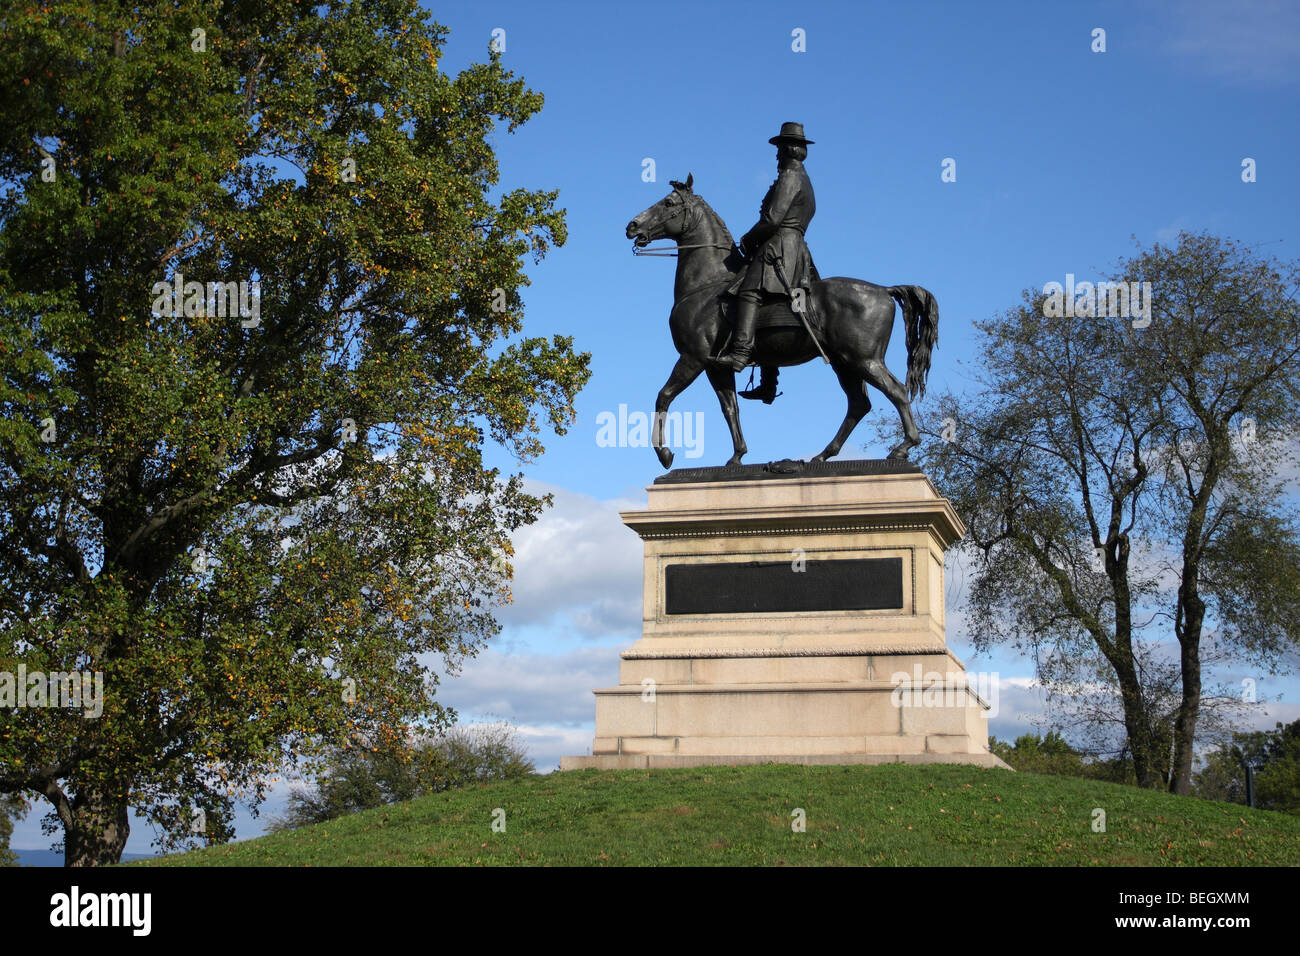 Monument to Major General Winfield Hancock, commander of the Union Army's 2nd Corp. Cemetery Ridge Gettysburg - Stock Image